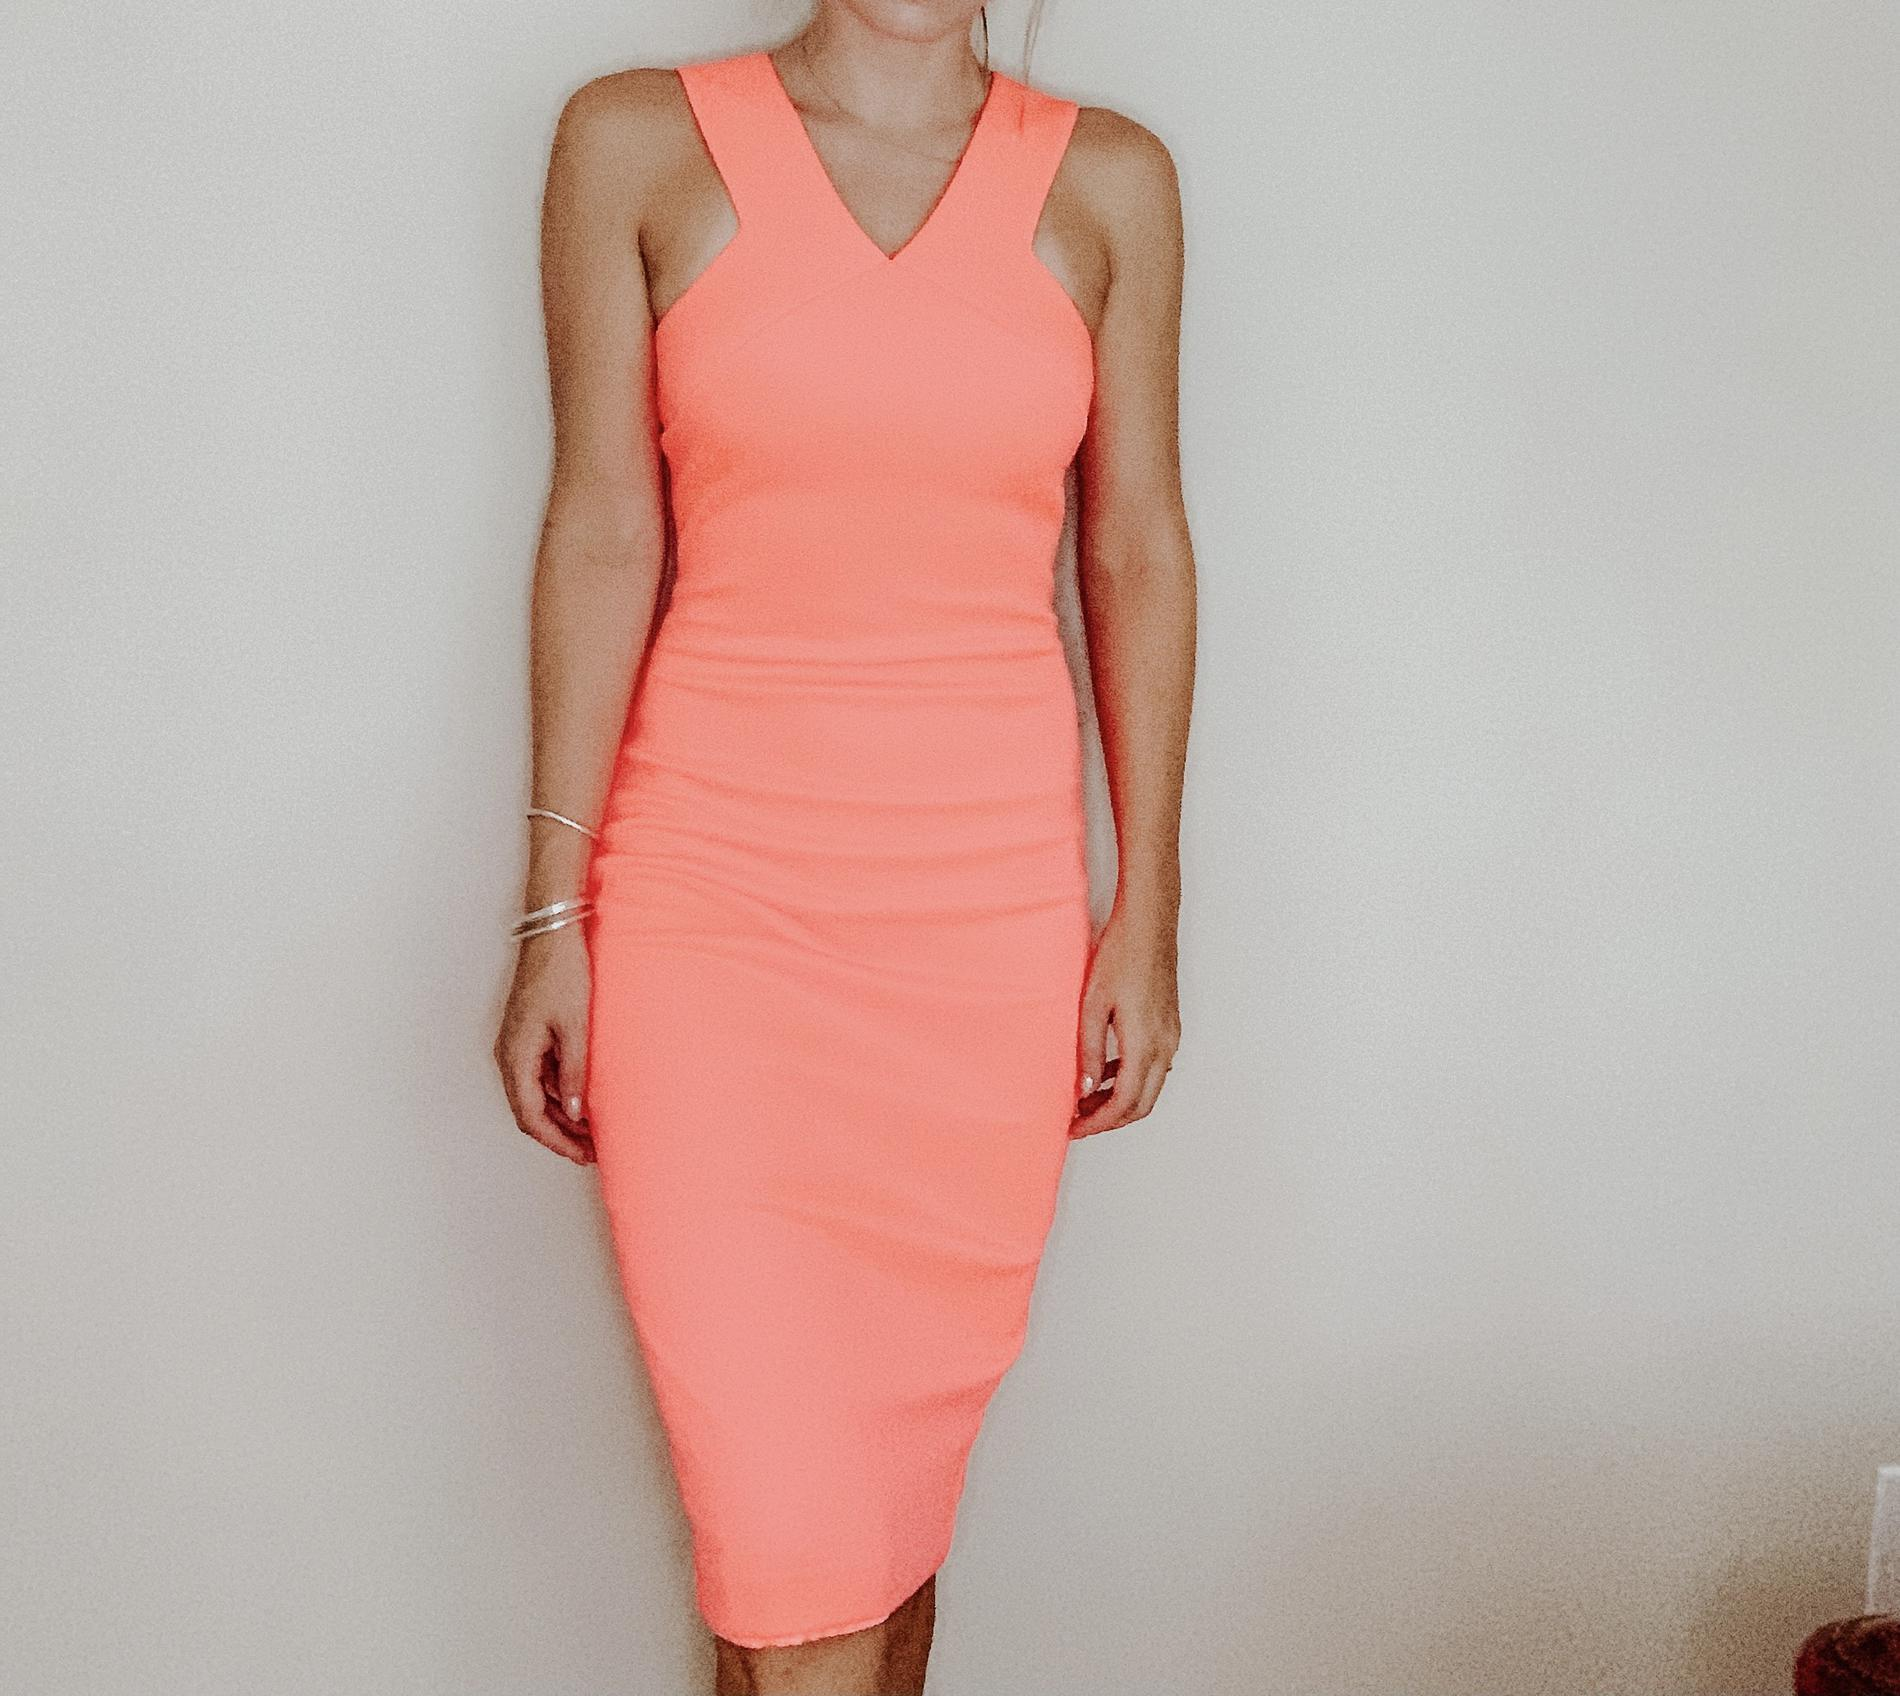 Ted Baker Pink Size 0 Bodycon V Neck Wedding Guest Straight Dress on Queenly